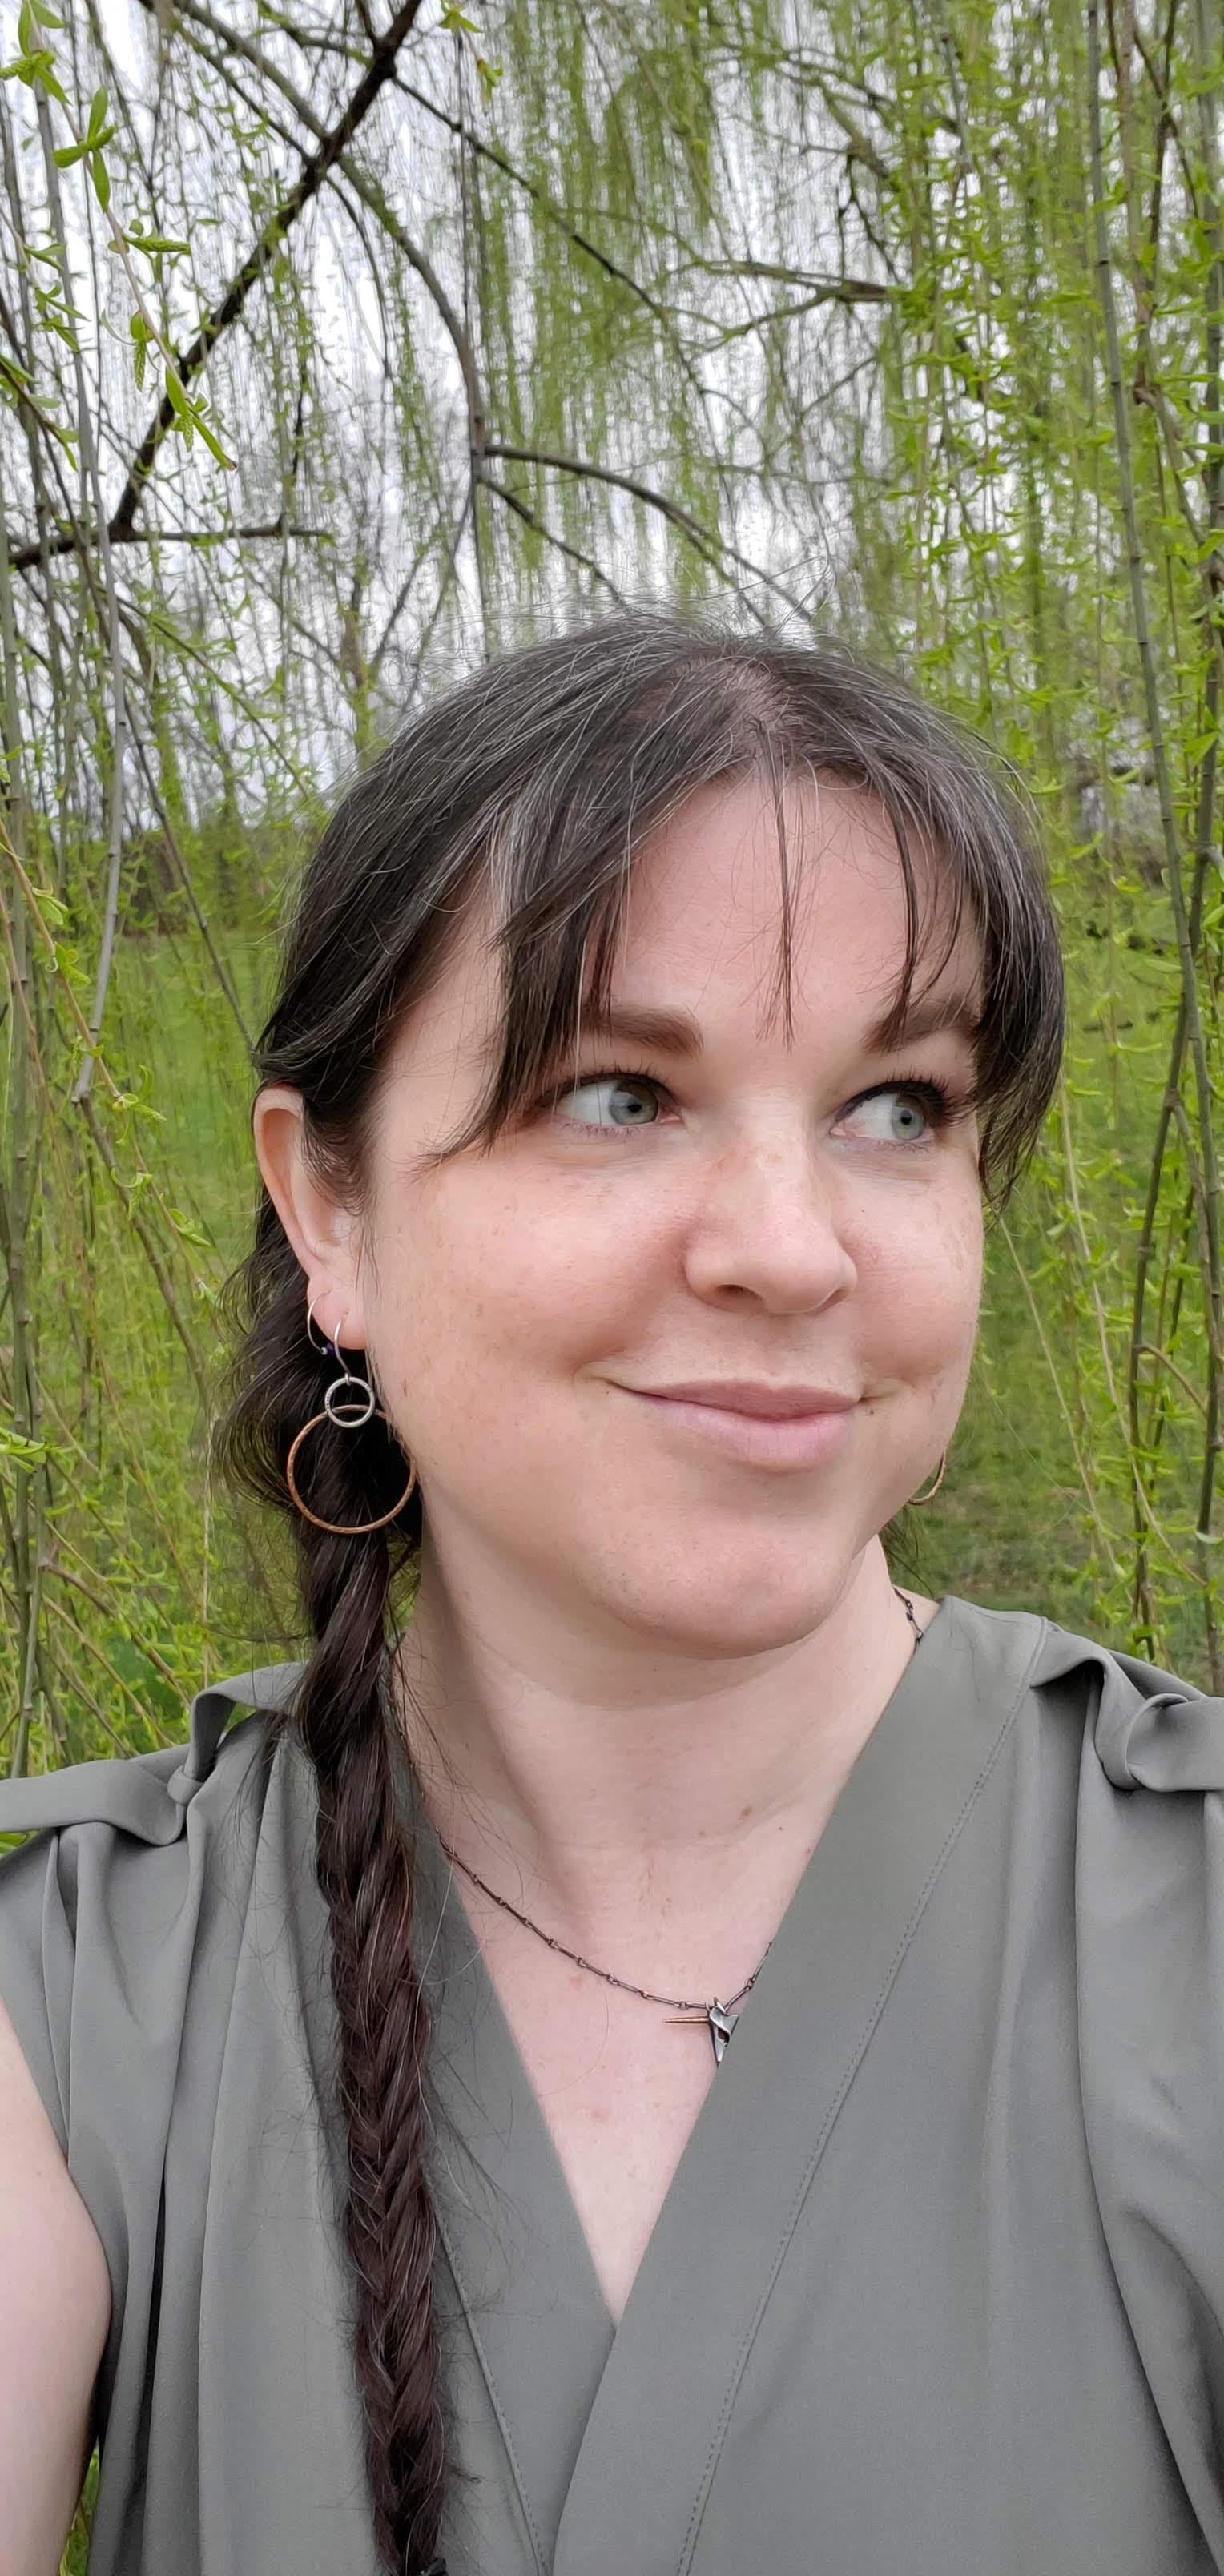 Author Elizabeth with braided brown hair and green shirt.